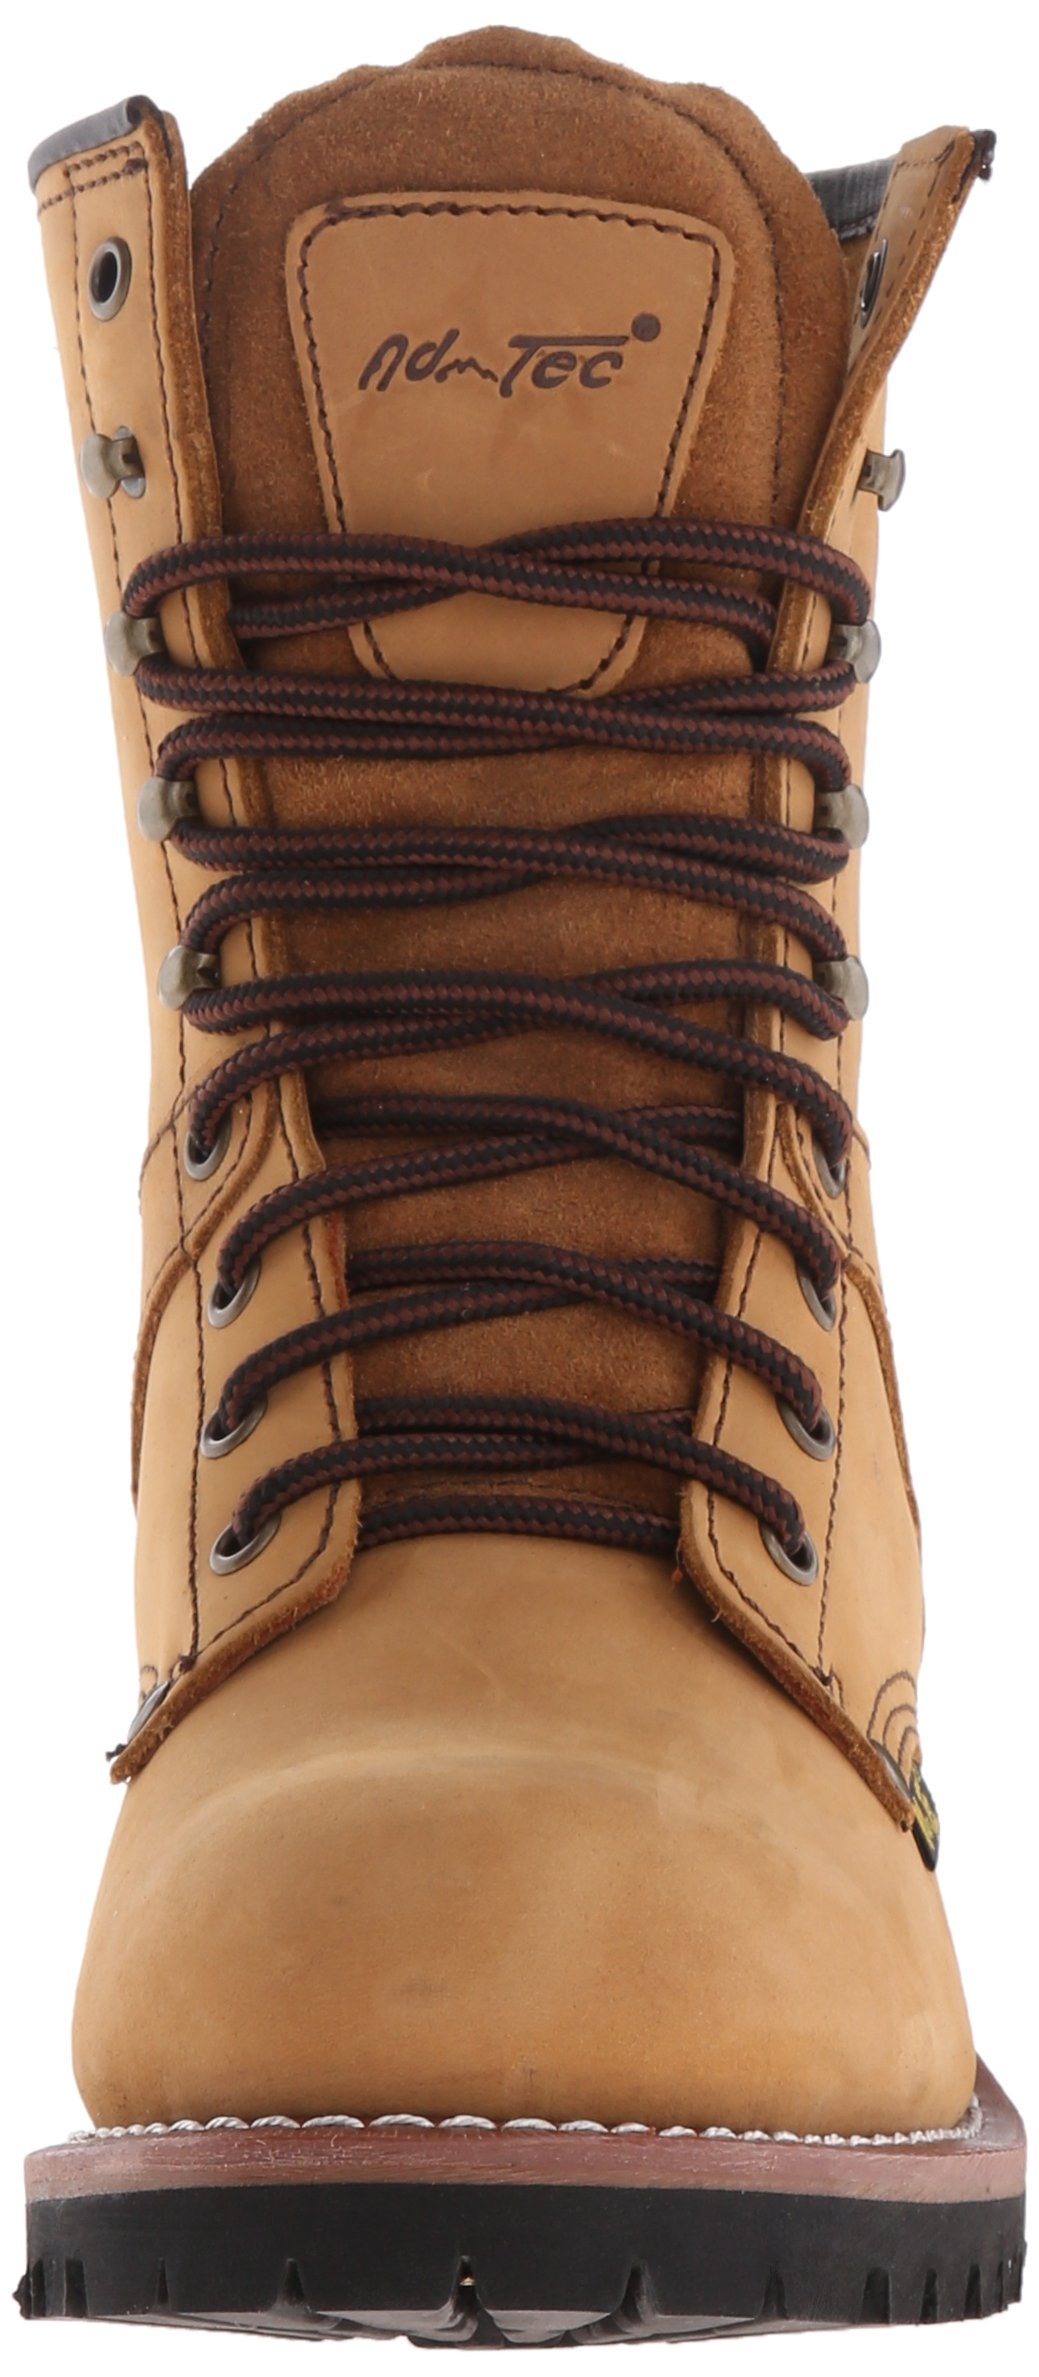 Adtec Men's 9 inch Logger Boot, Brown, 9 W US by Adtec (Image #4)